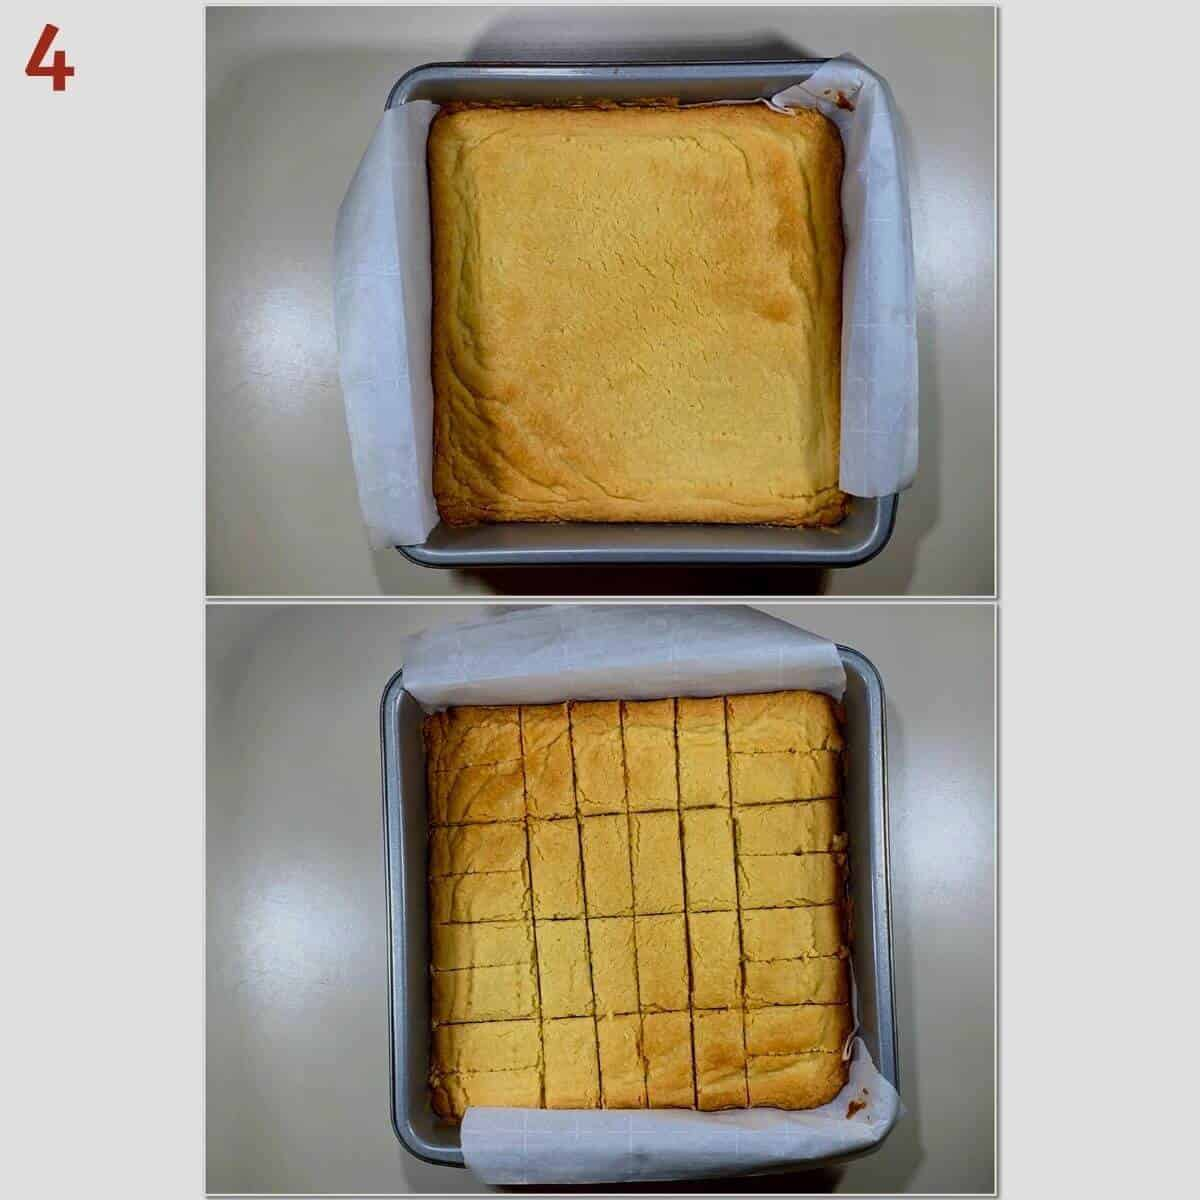 Collage of shortbread after baking and cut into bars in pan.